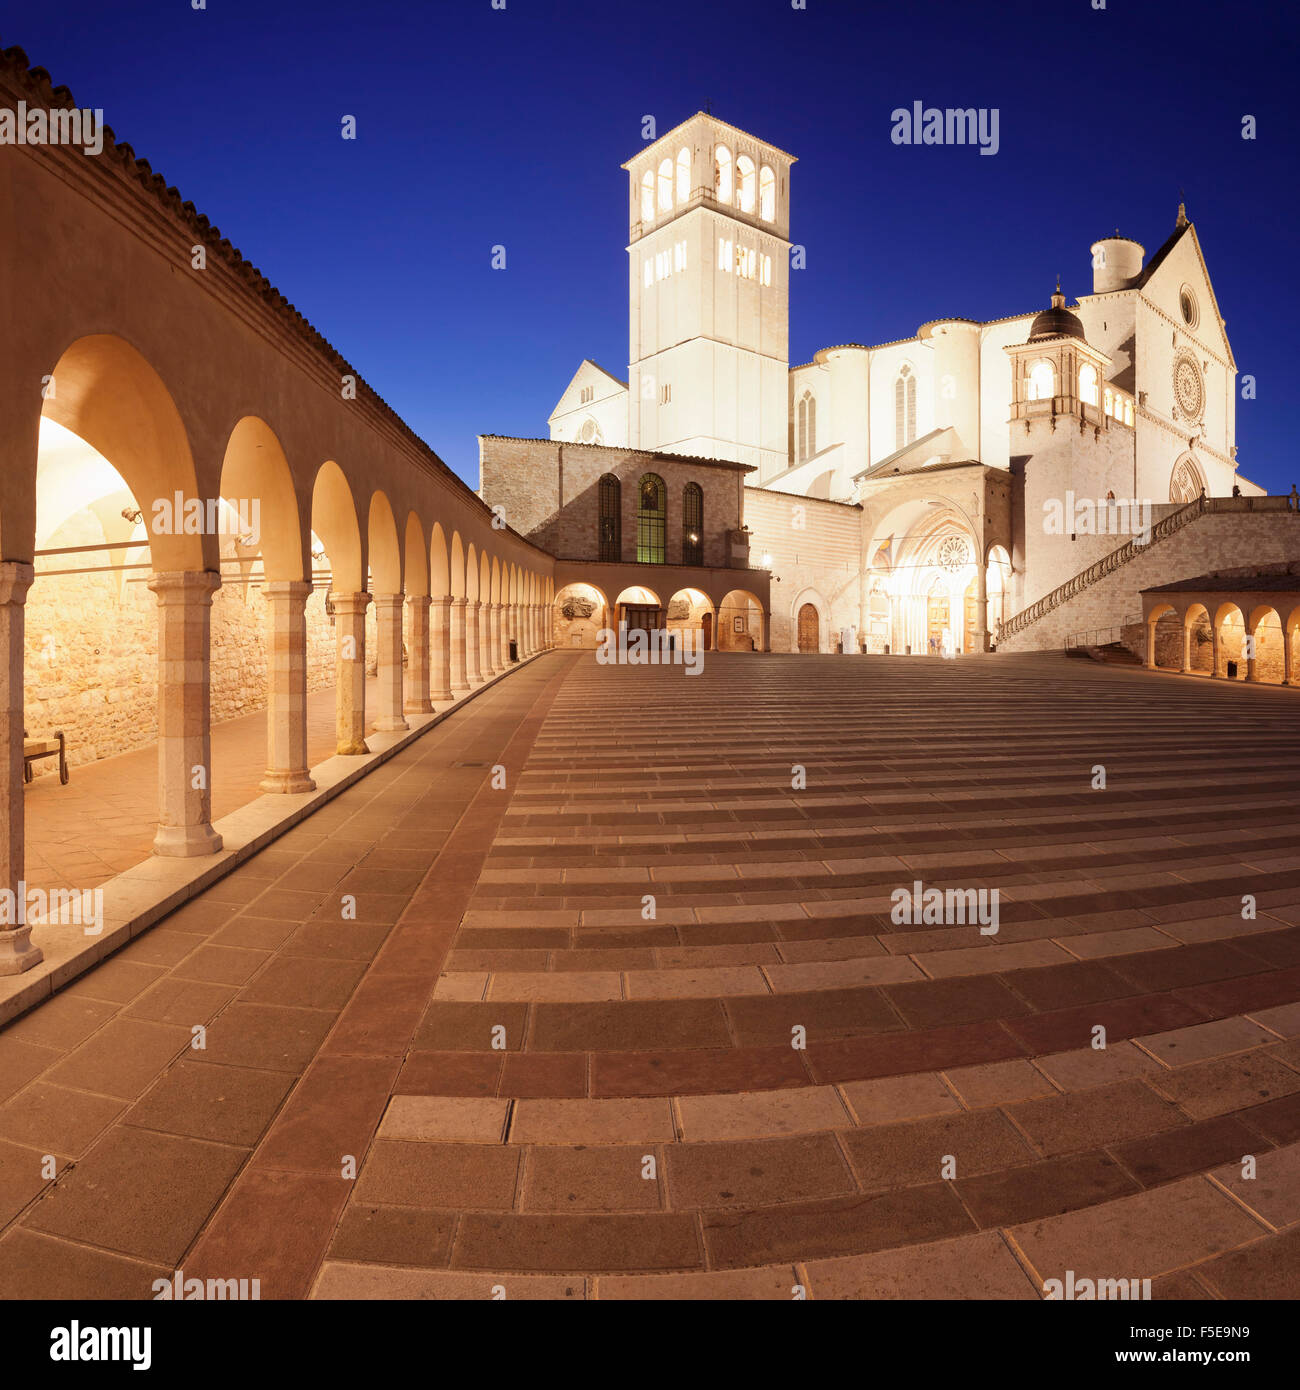 Basilica of San Francesco, UNESCO World Heritage Site, Assisi, Perugia District, Umbria, Italy, Europe - Stock Image